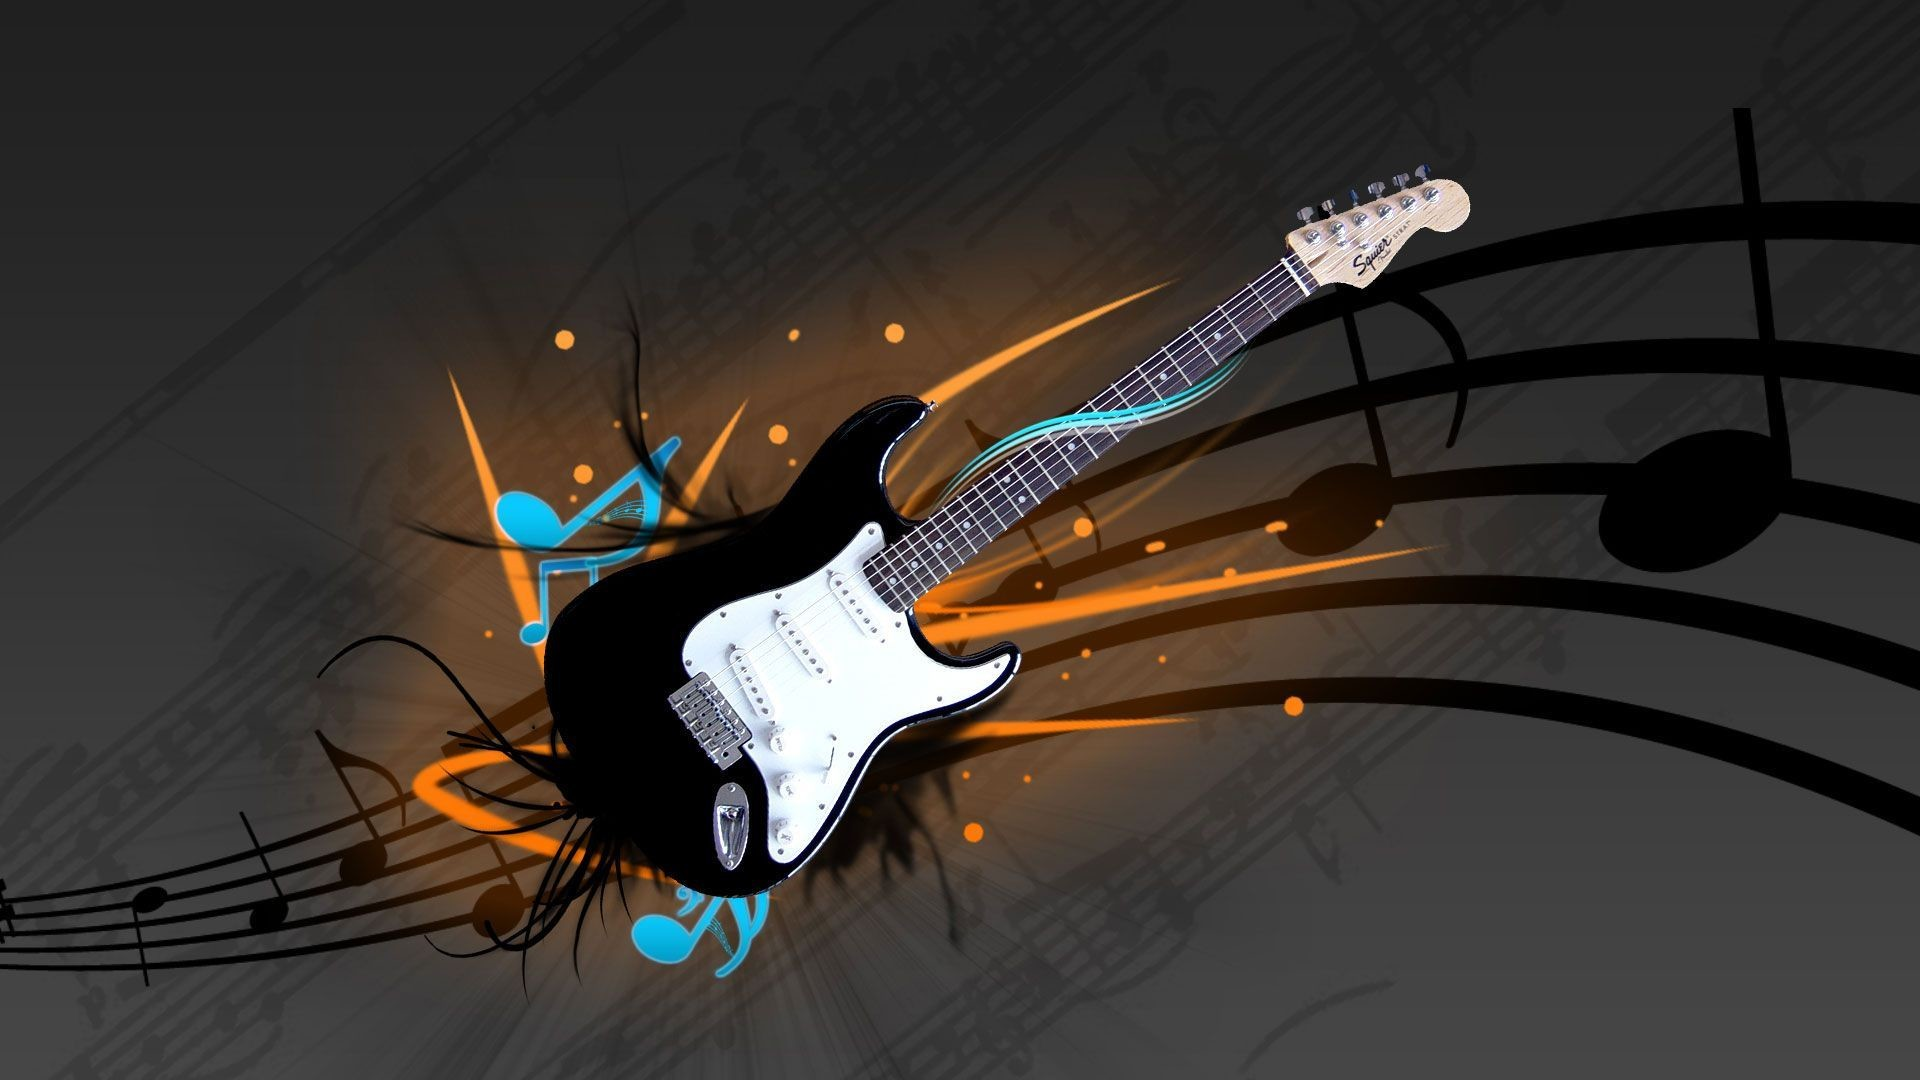 Res: 1920x1080,  Guitar Wallpapers Download Group (66+), #2 of 92